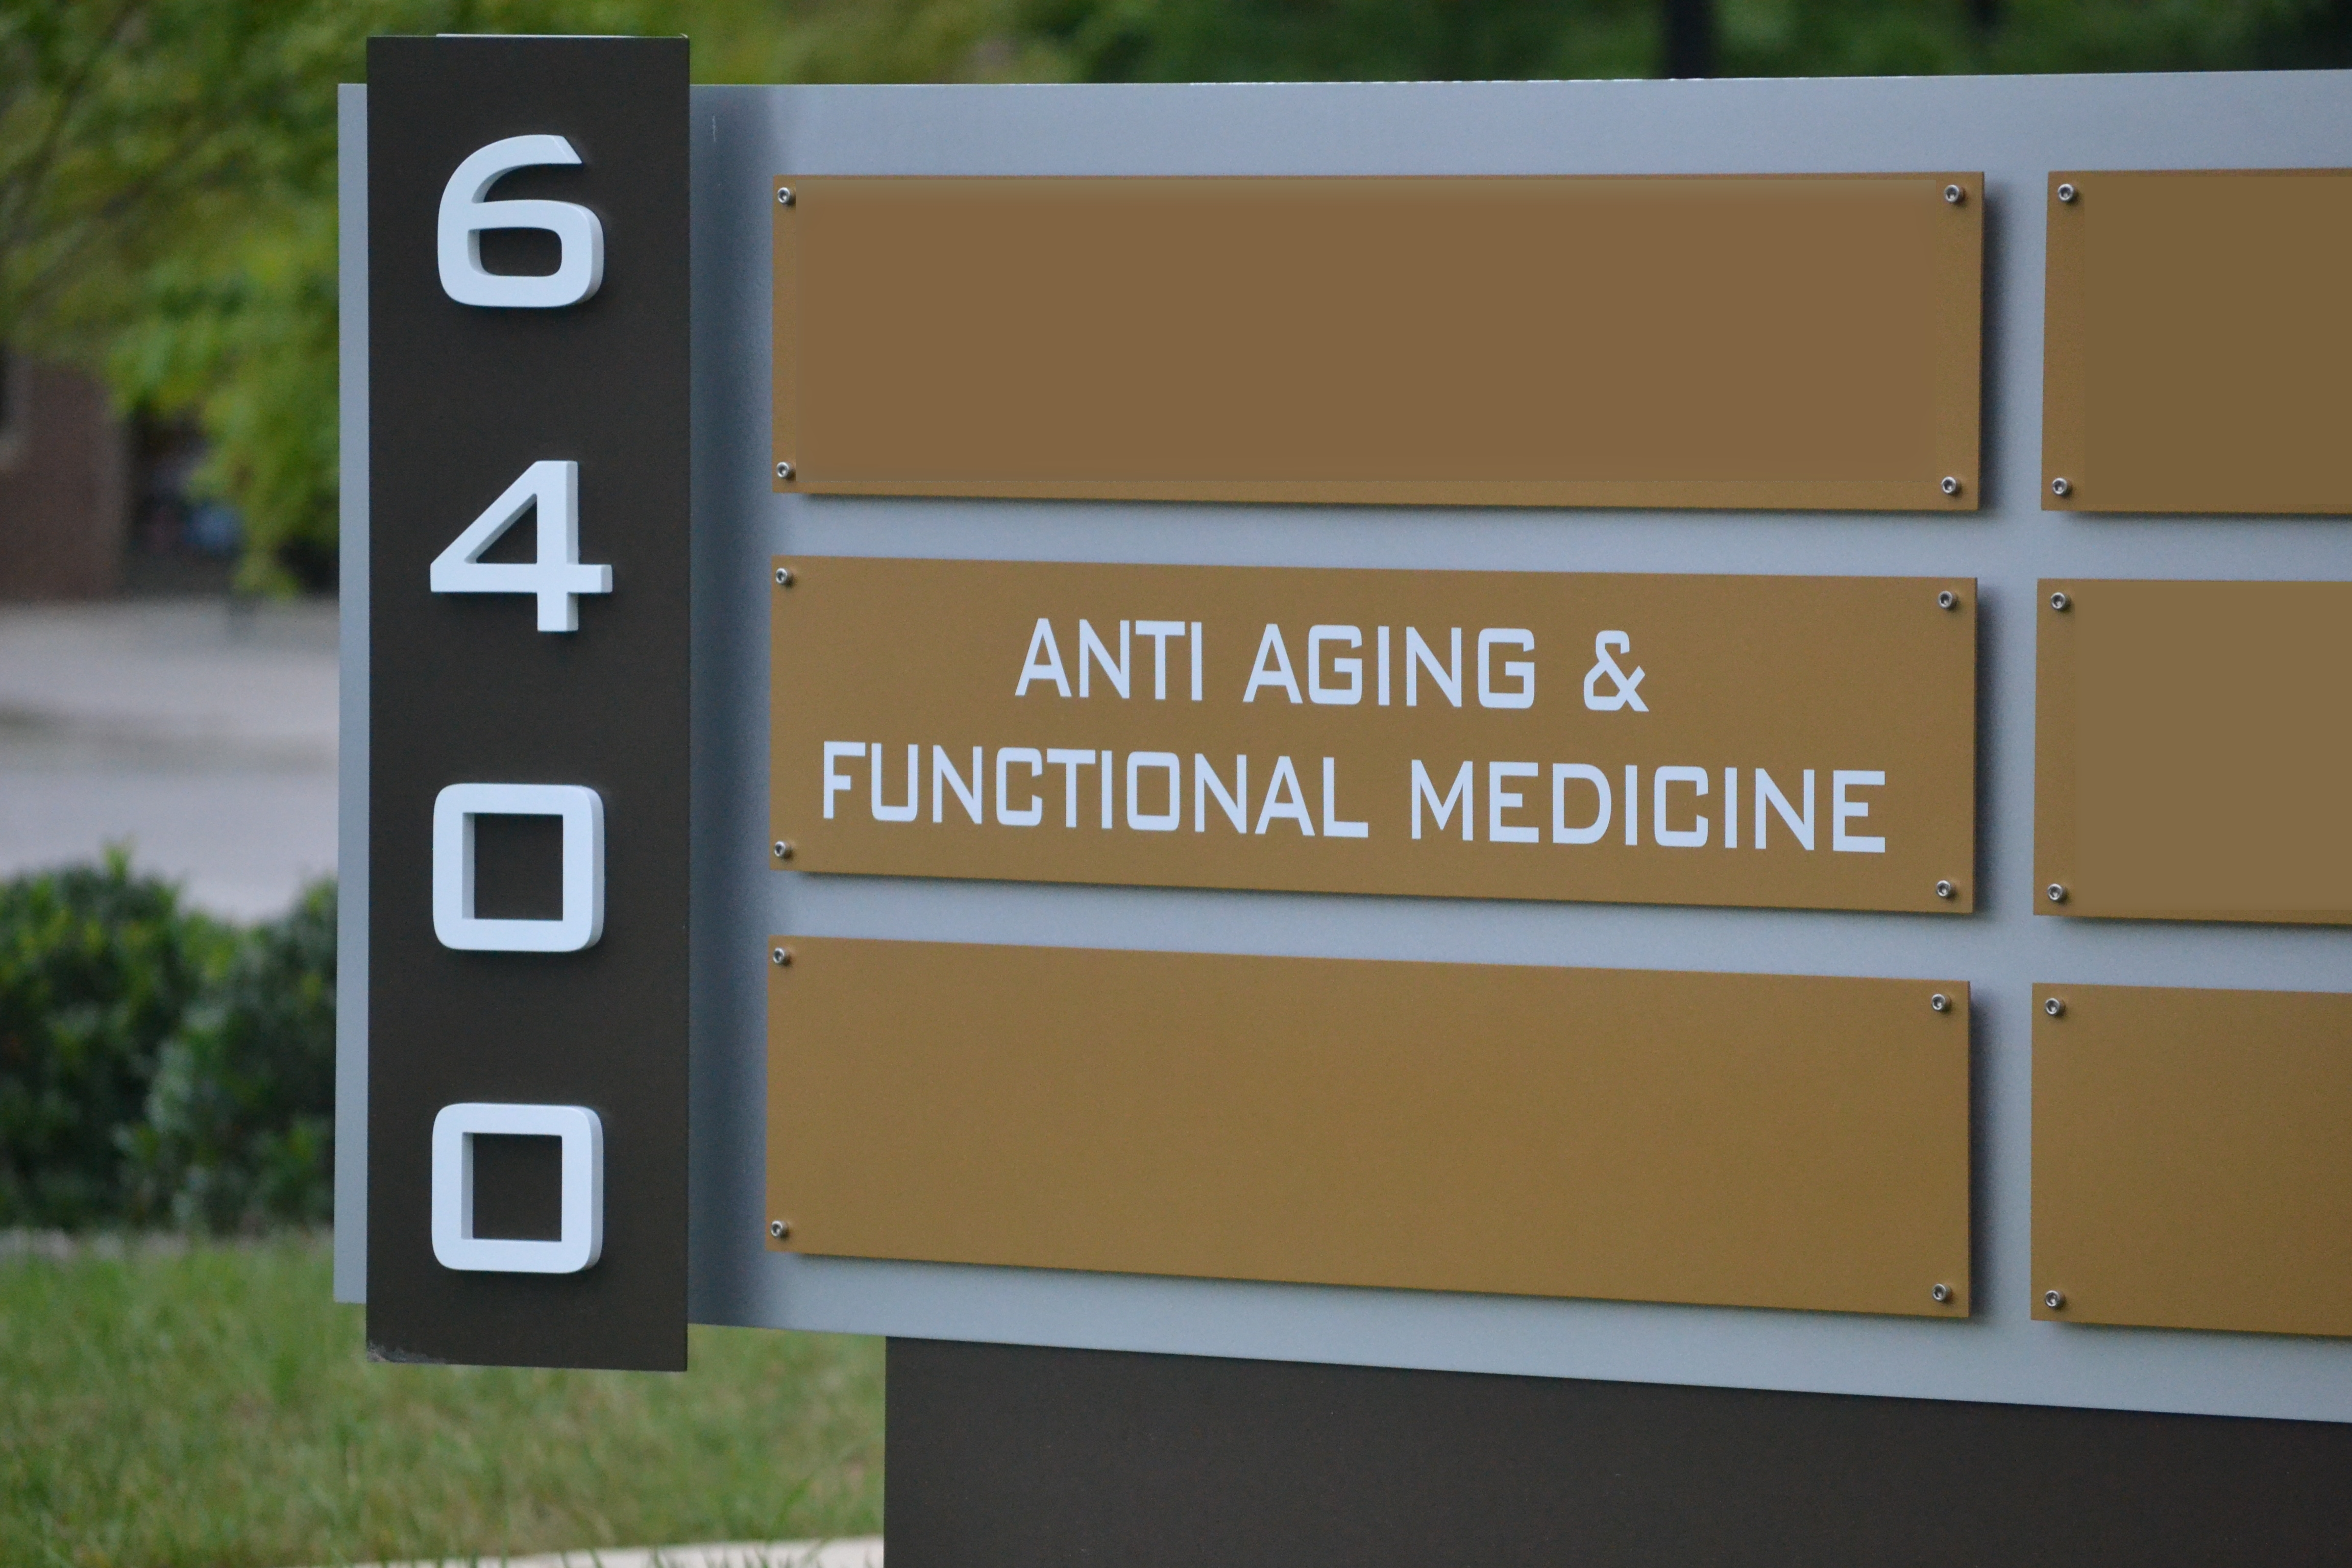 Welcome to Anti-Aging and Functional Medicine